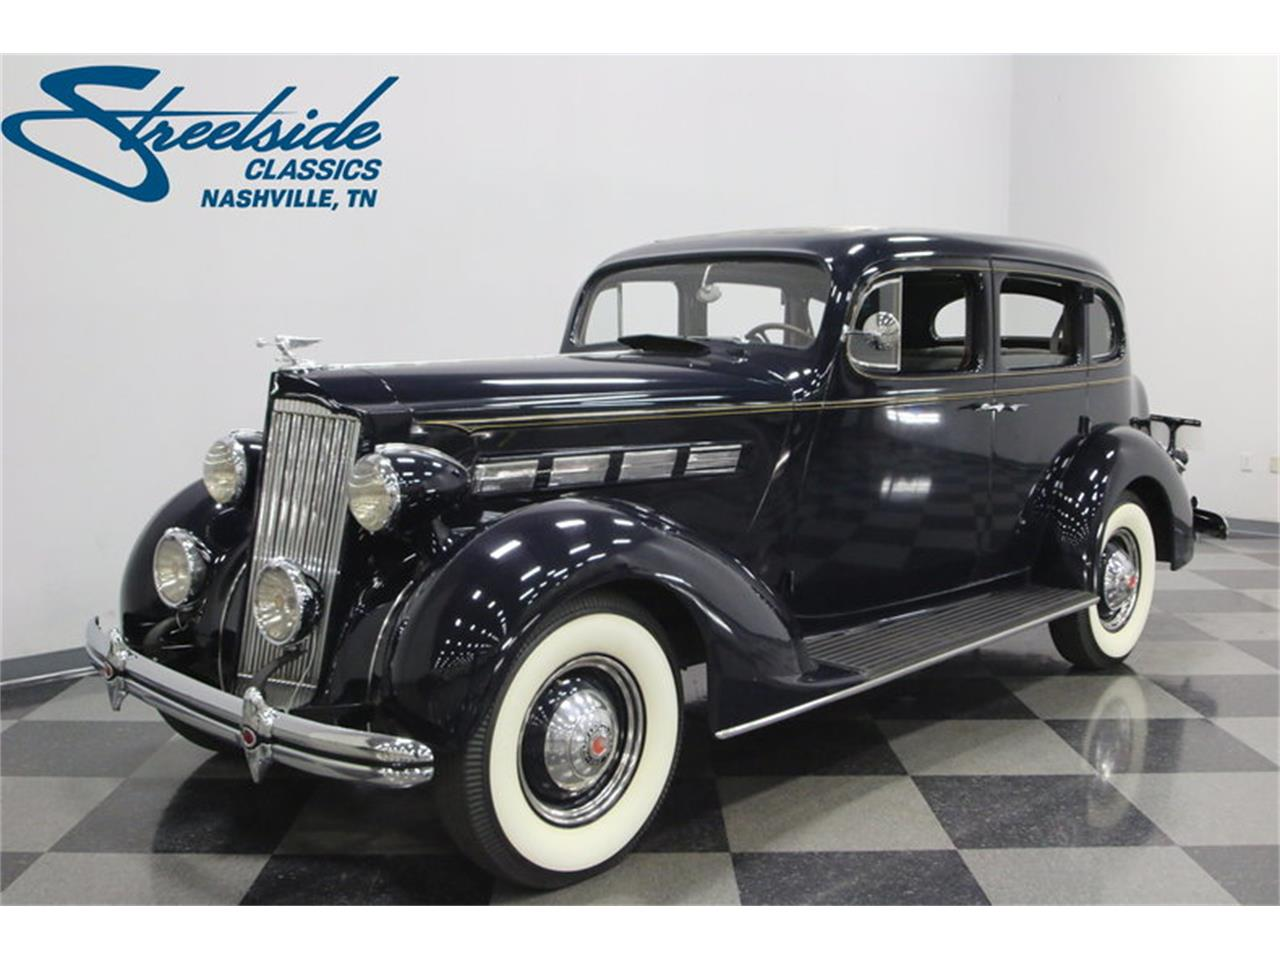 For Sale: 1937 Packard 120 in Lavergne, Tennessee on